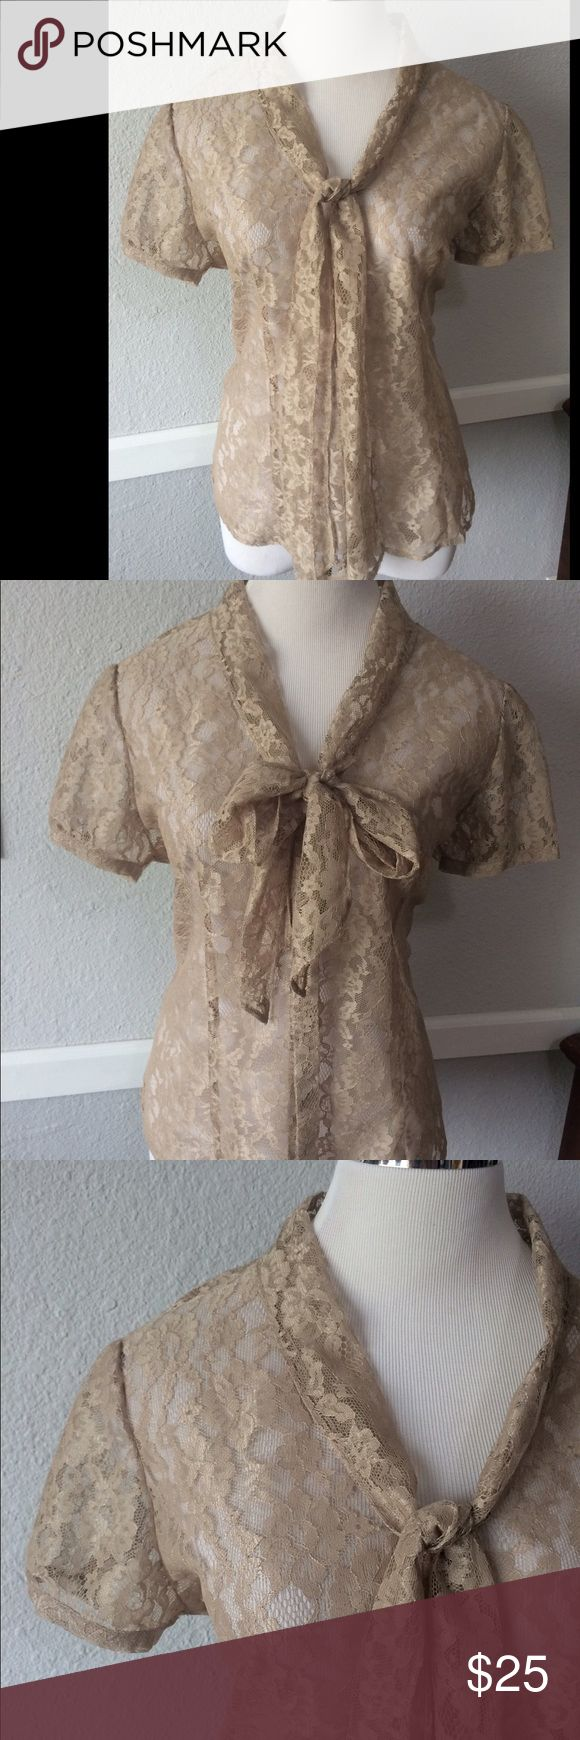 Cato Beige Lace Button Up Pussy Bow Large Like new. Would need a Cami or bandeau under. Very pretty. Victorian inspired. All Lace Cato Tops Blouses